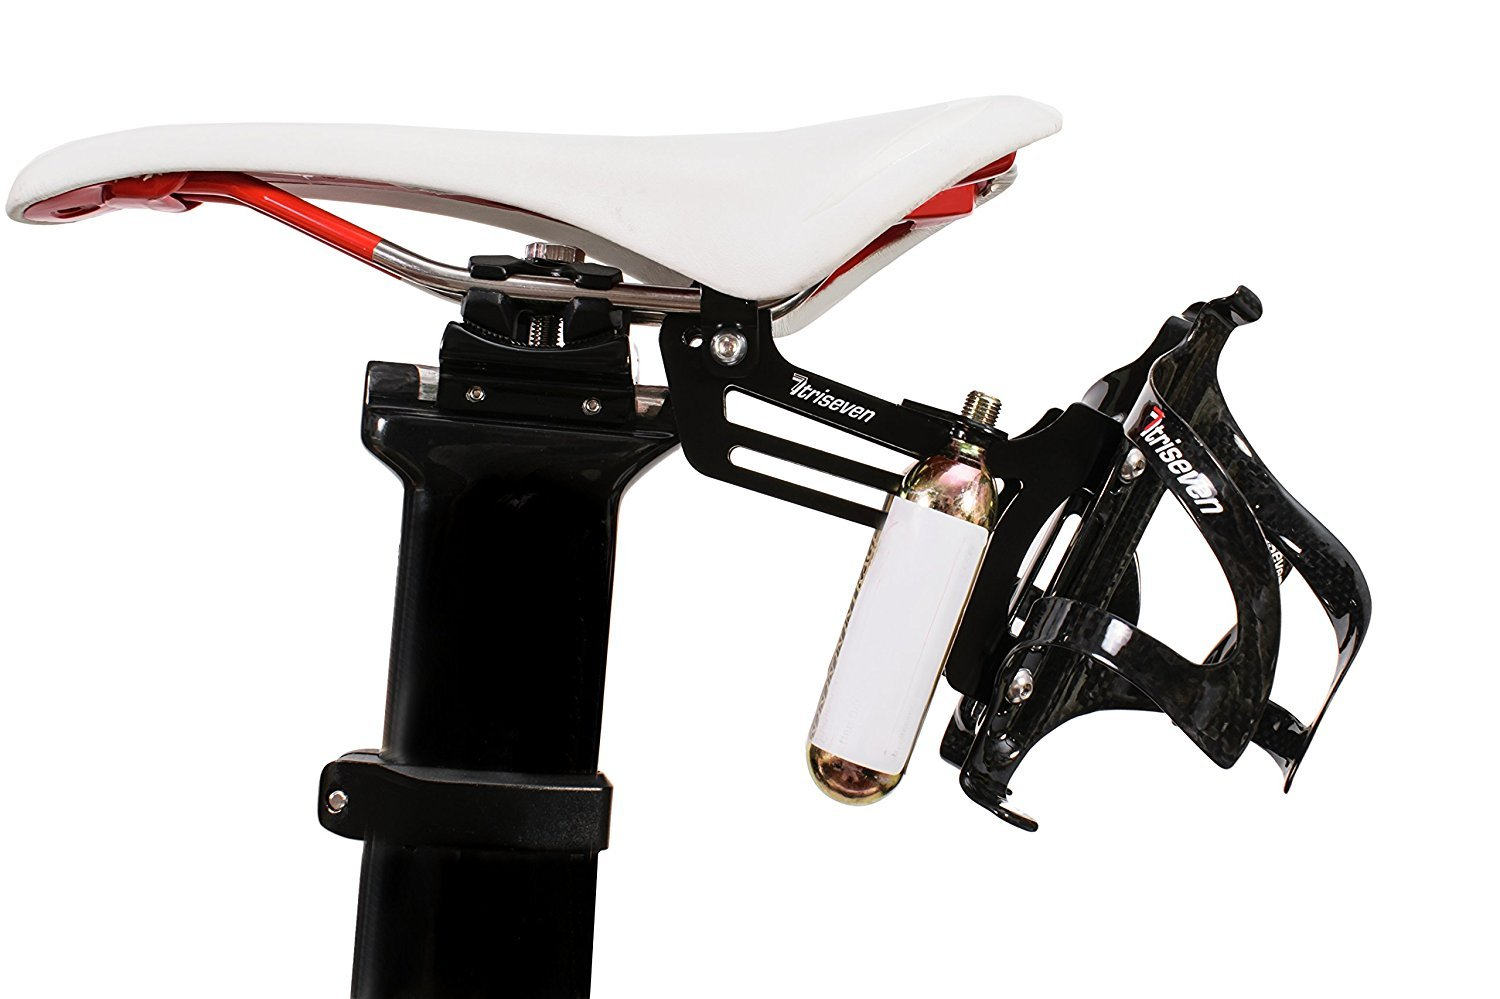 TriSeven Premium Cycling Saddle Cage Holder - Lightweight for Triathlon & MTB, Holds 2 Water Bottles & 2 co2 Cartridges | Does NOT Include Water Cages!